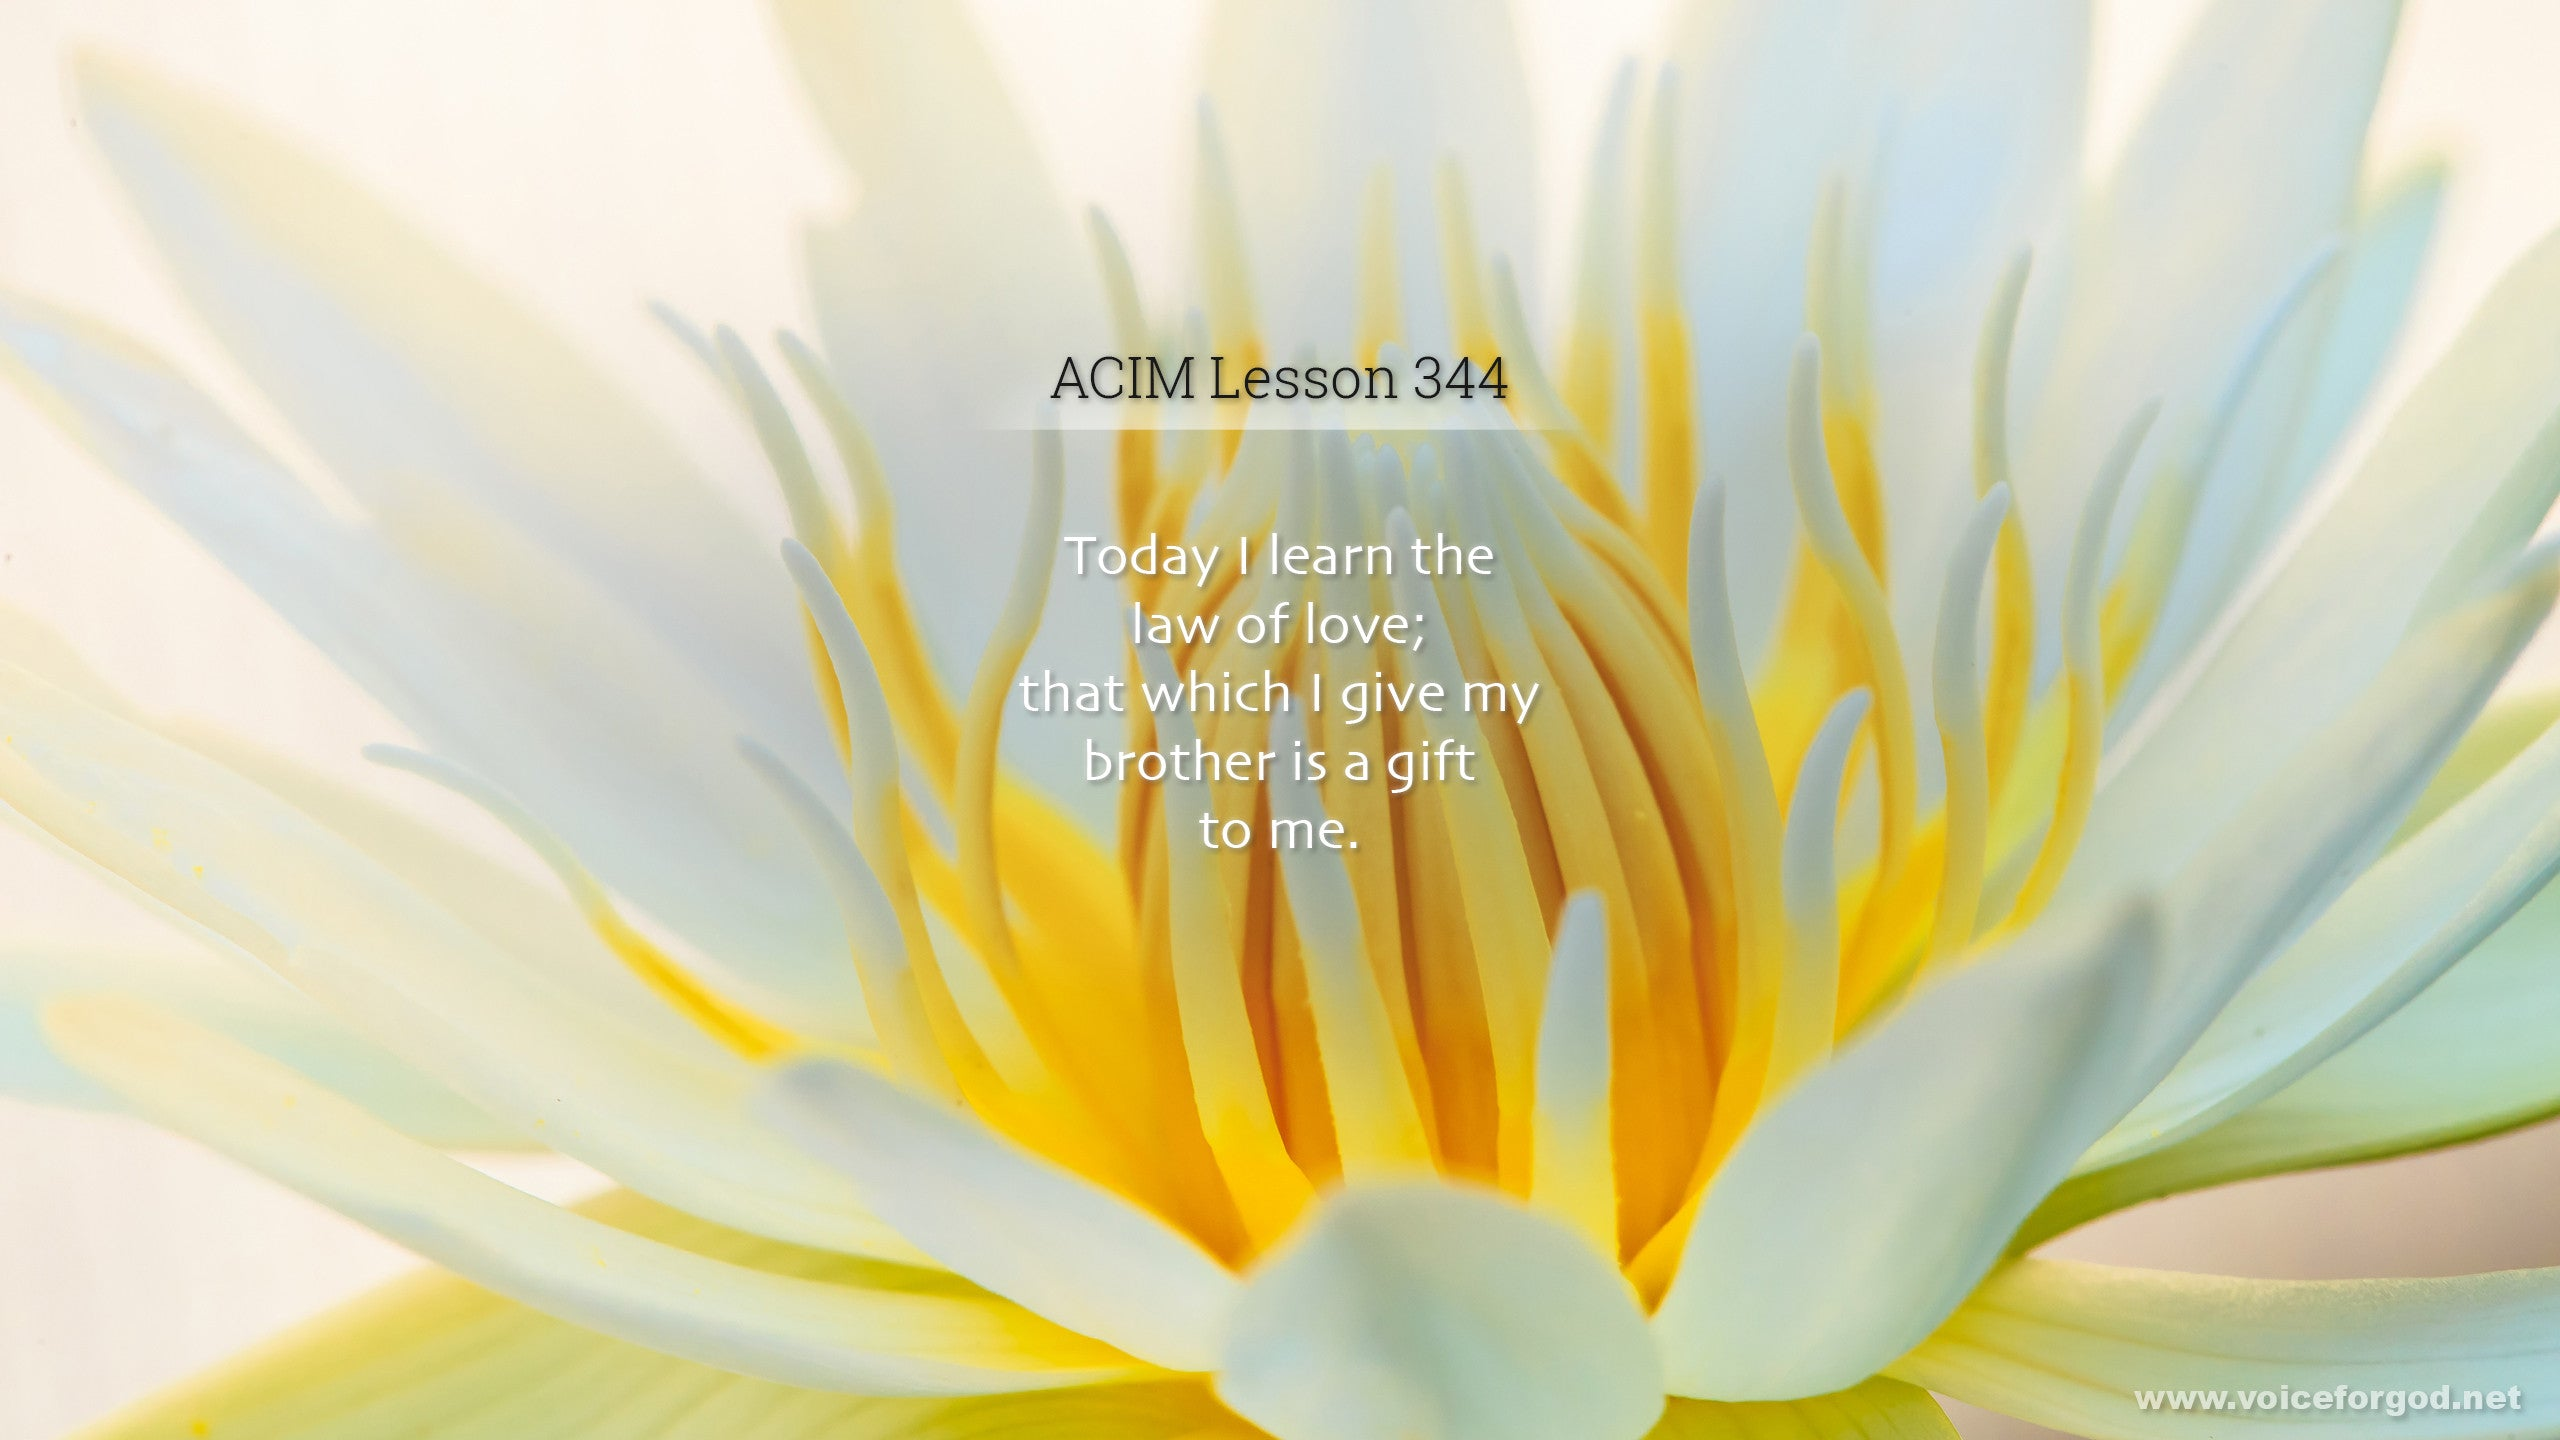 ACIM Lesson 344 - A Course in Miracles Workbook Lesson 344